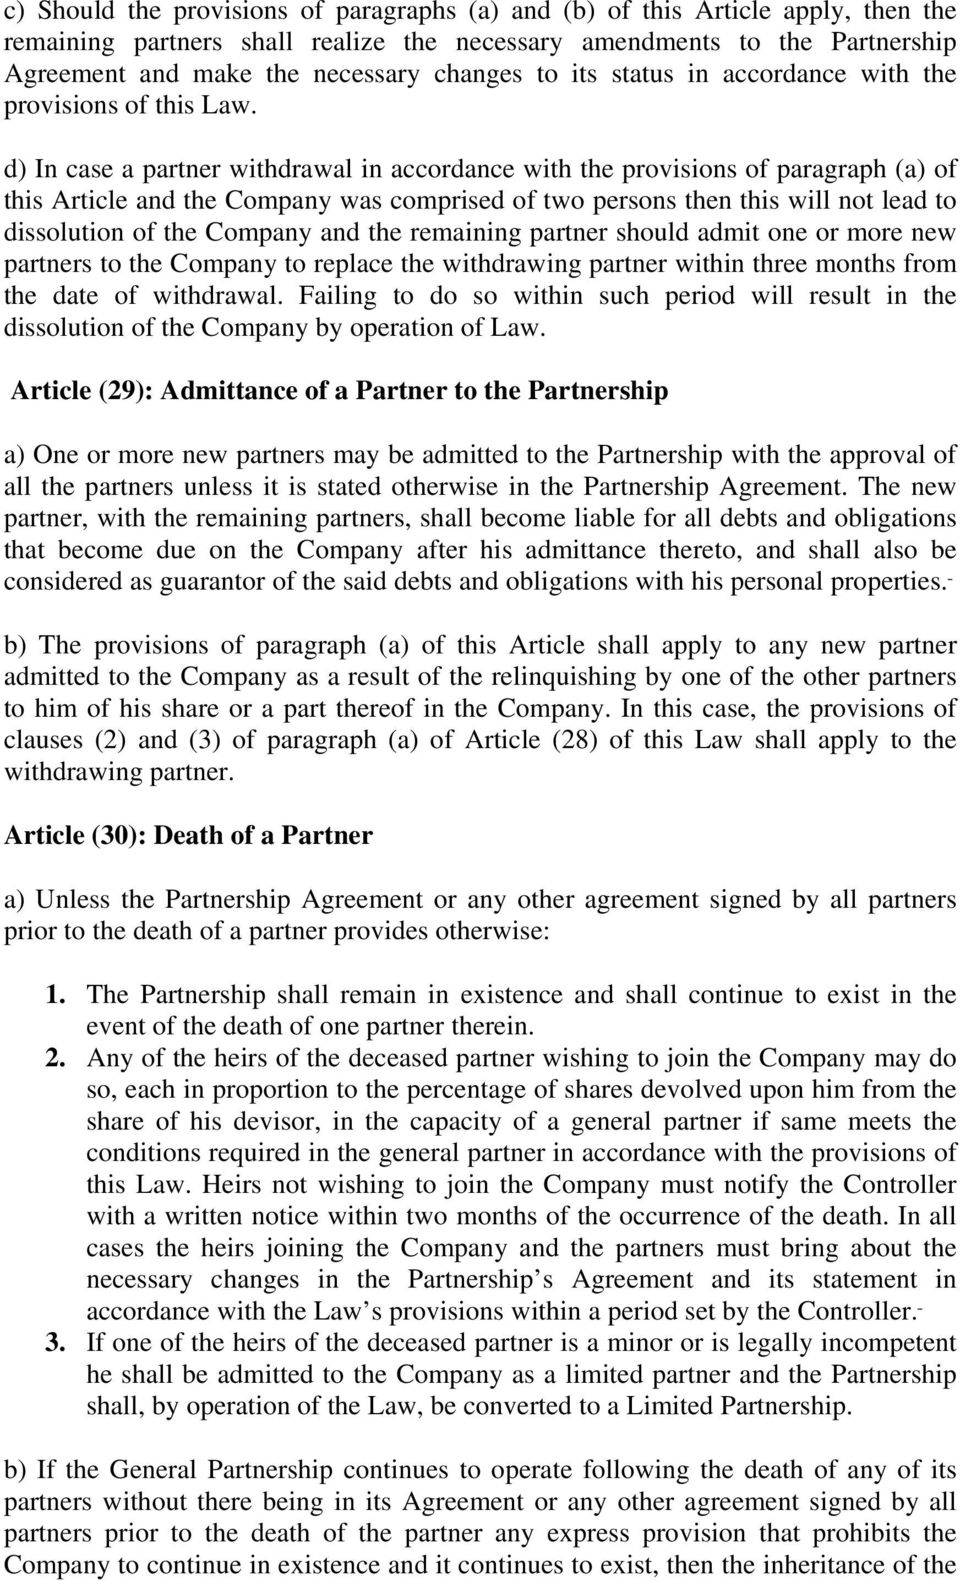 d) In case a partner withdrawal in accordance with the provisions of paragraph (a) of this Article and the Company was comprised of two persons then this will not lead to dissolution of the Company